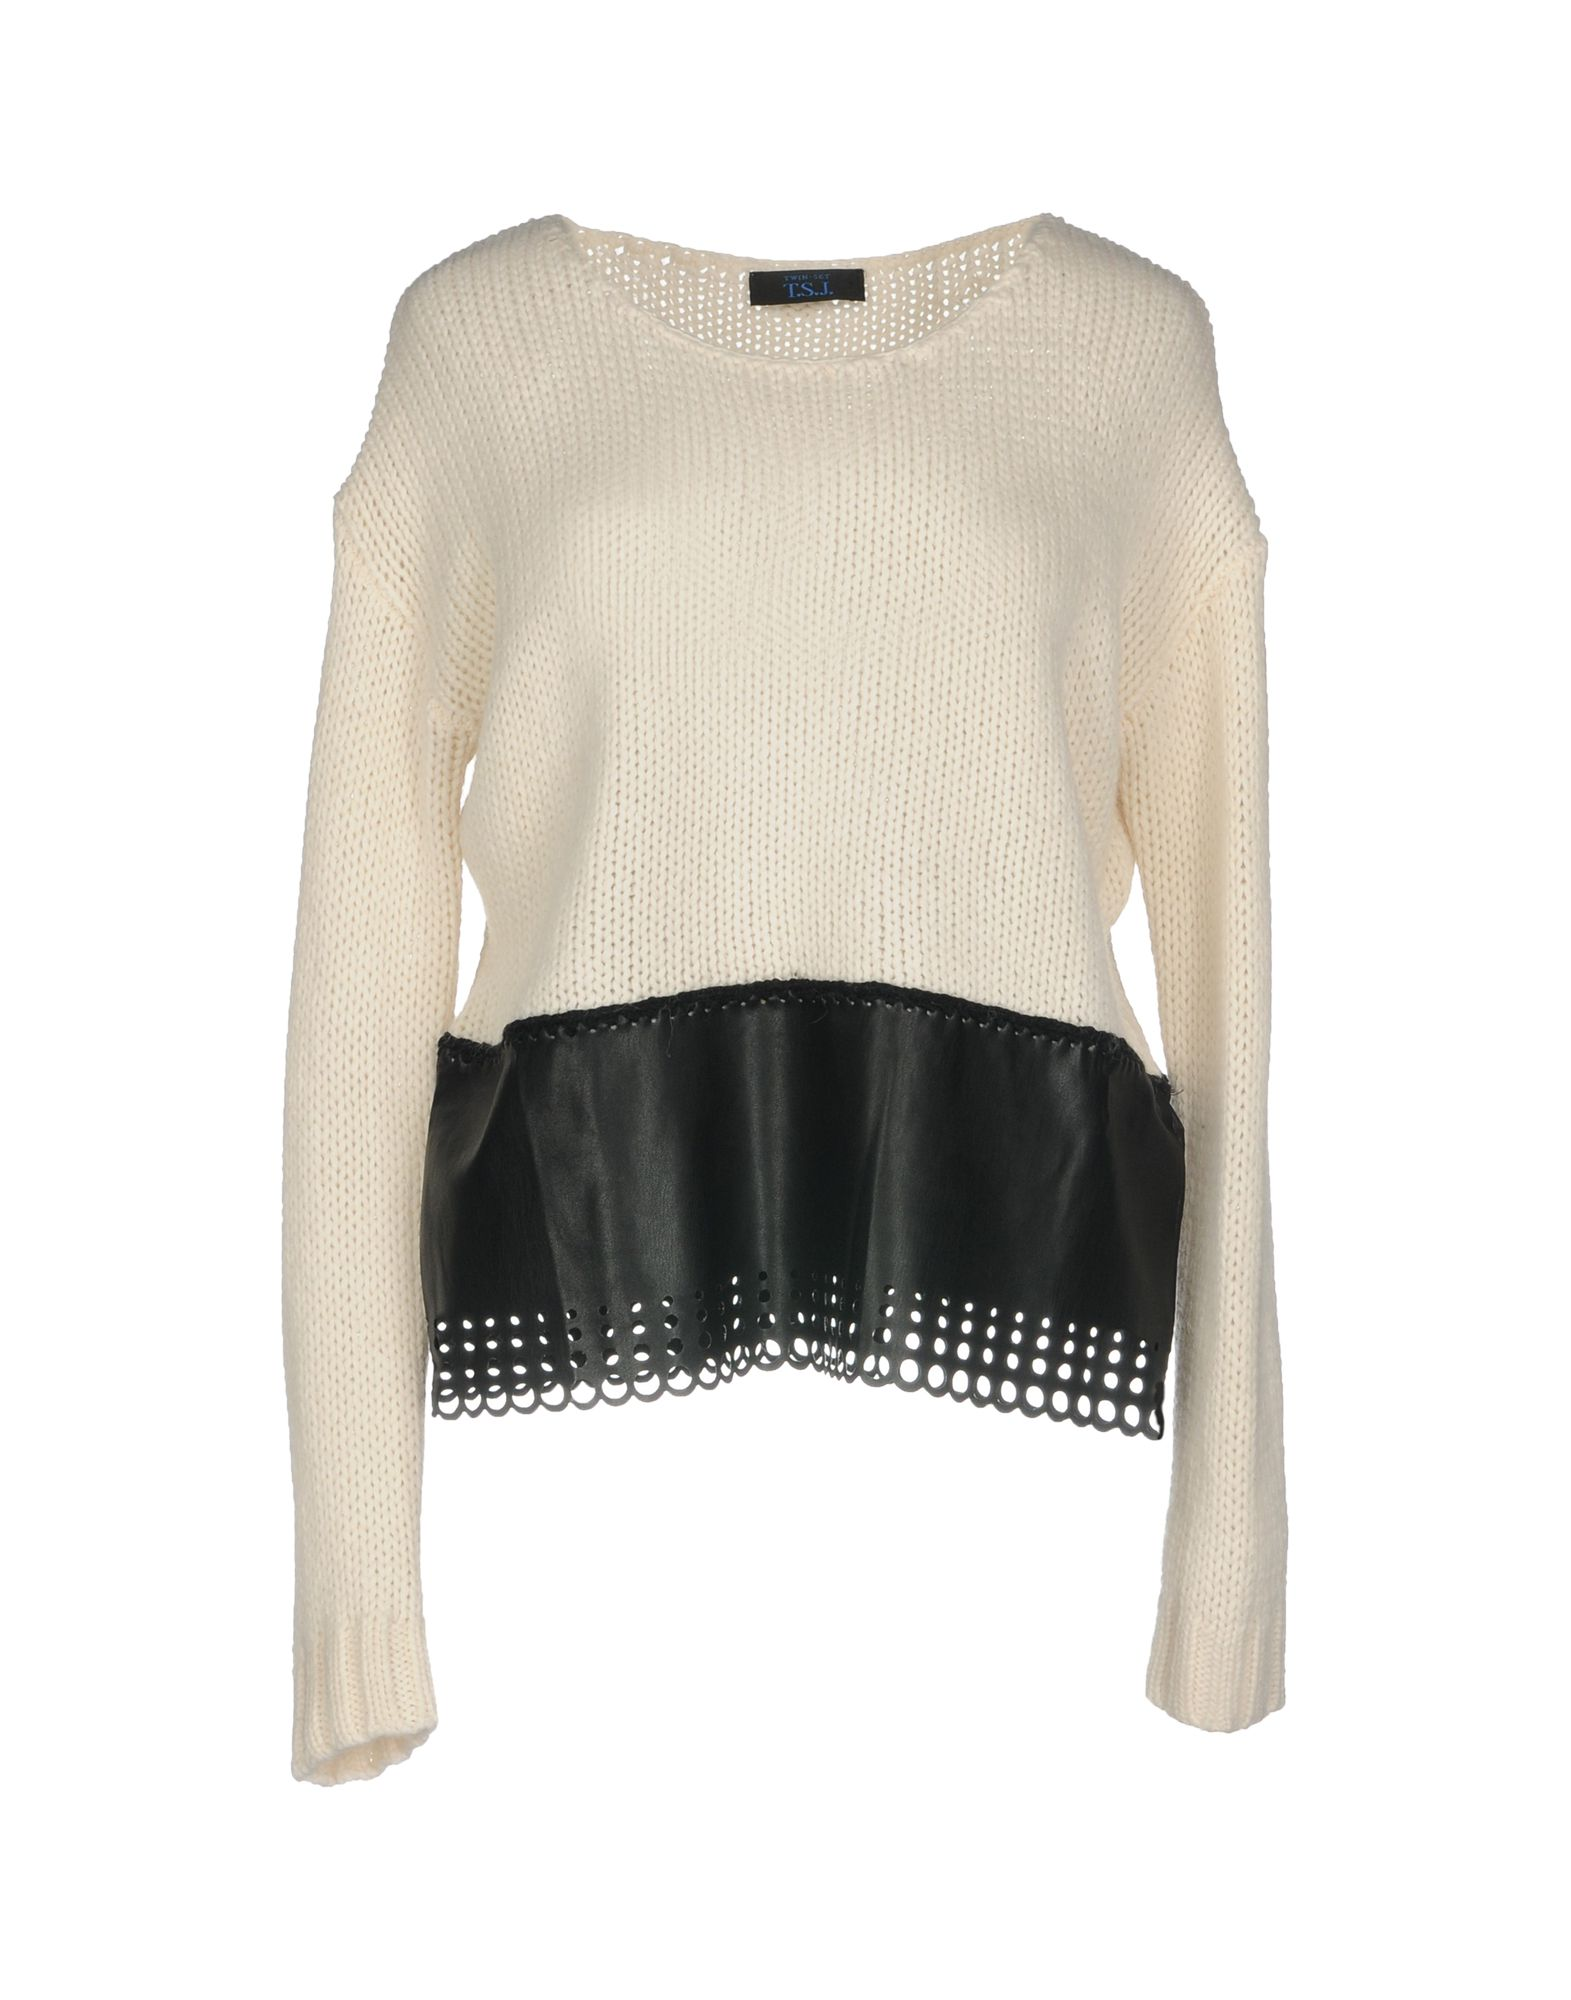 TWIN-SET JEANS Sweater in Ivory